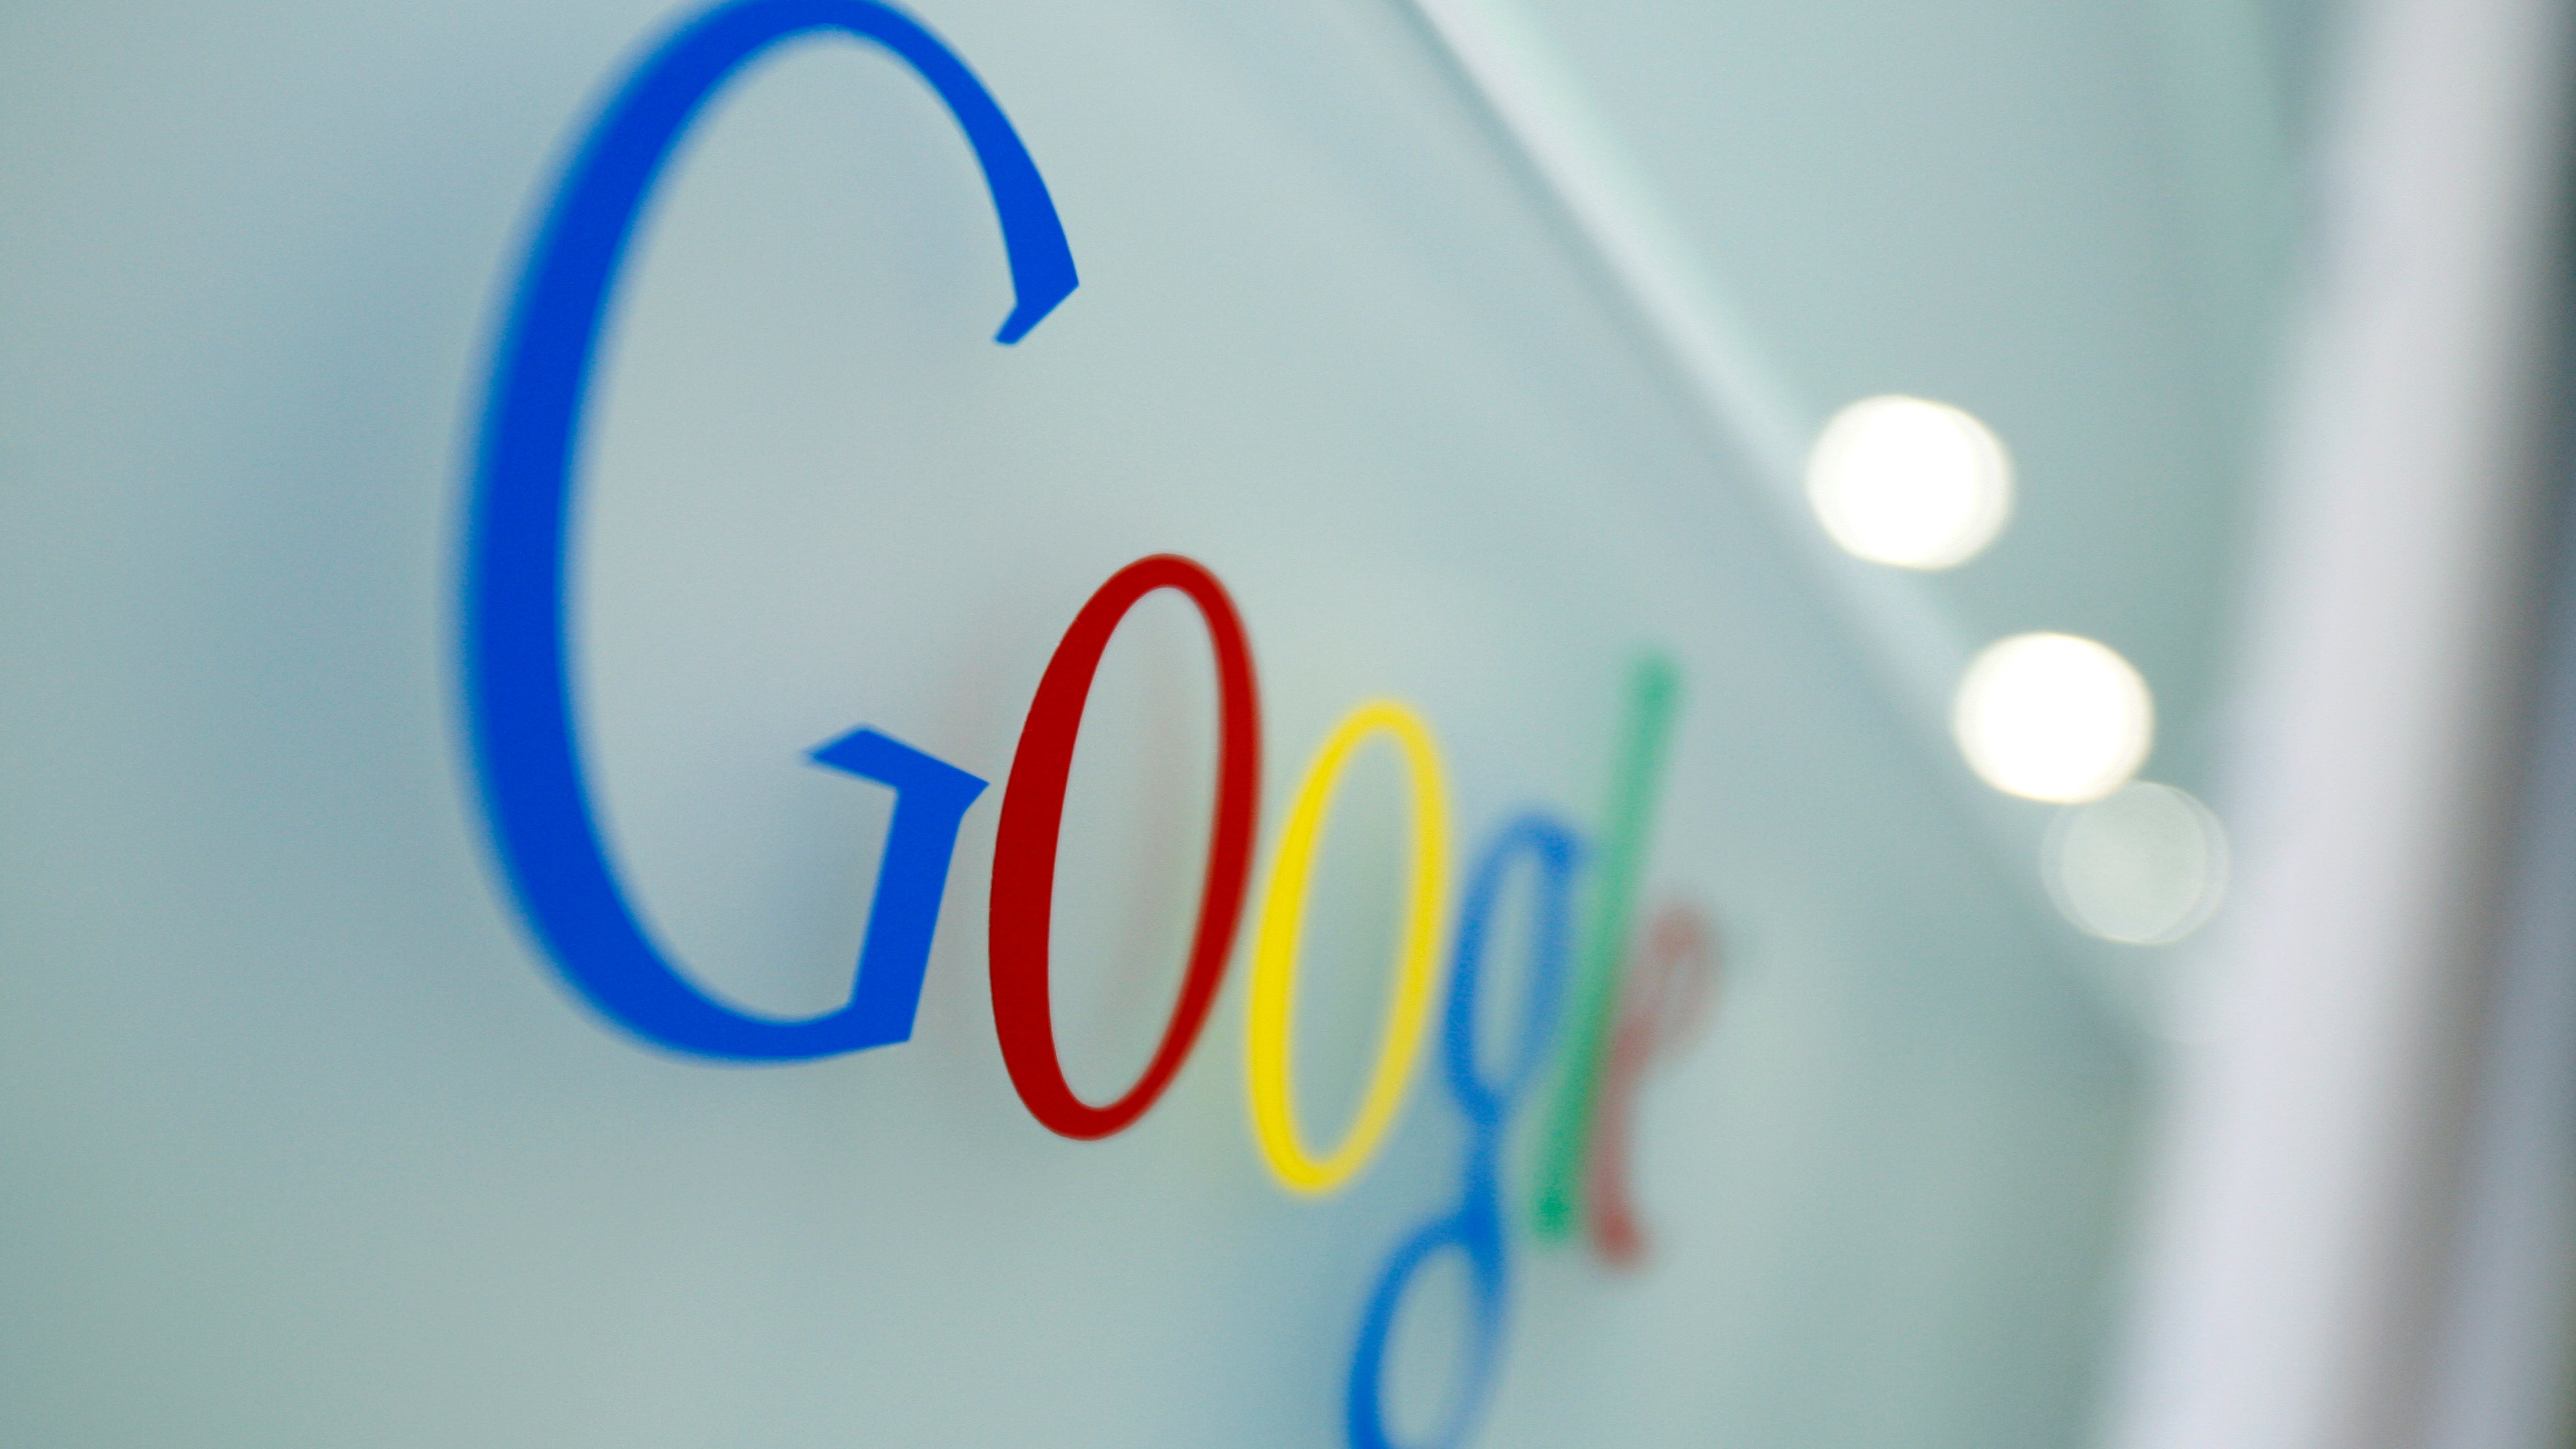 Google Says It's Received 2.4 Million Takedown Requests Under EU's 'Right To Be Forgotten' Laws